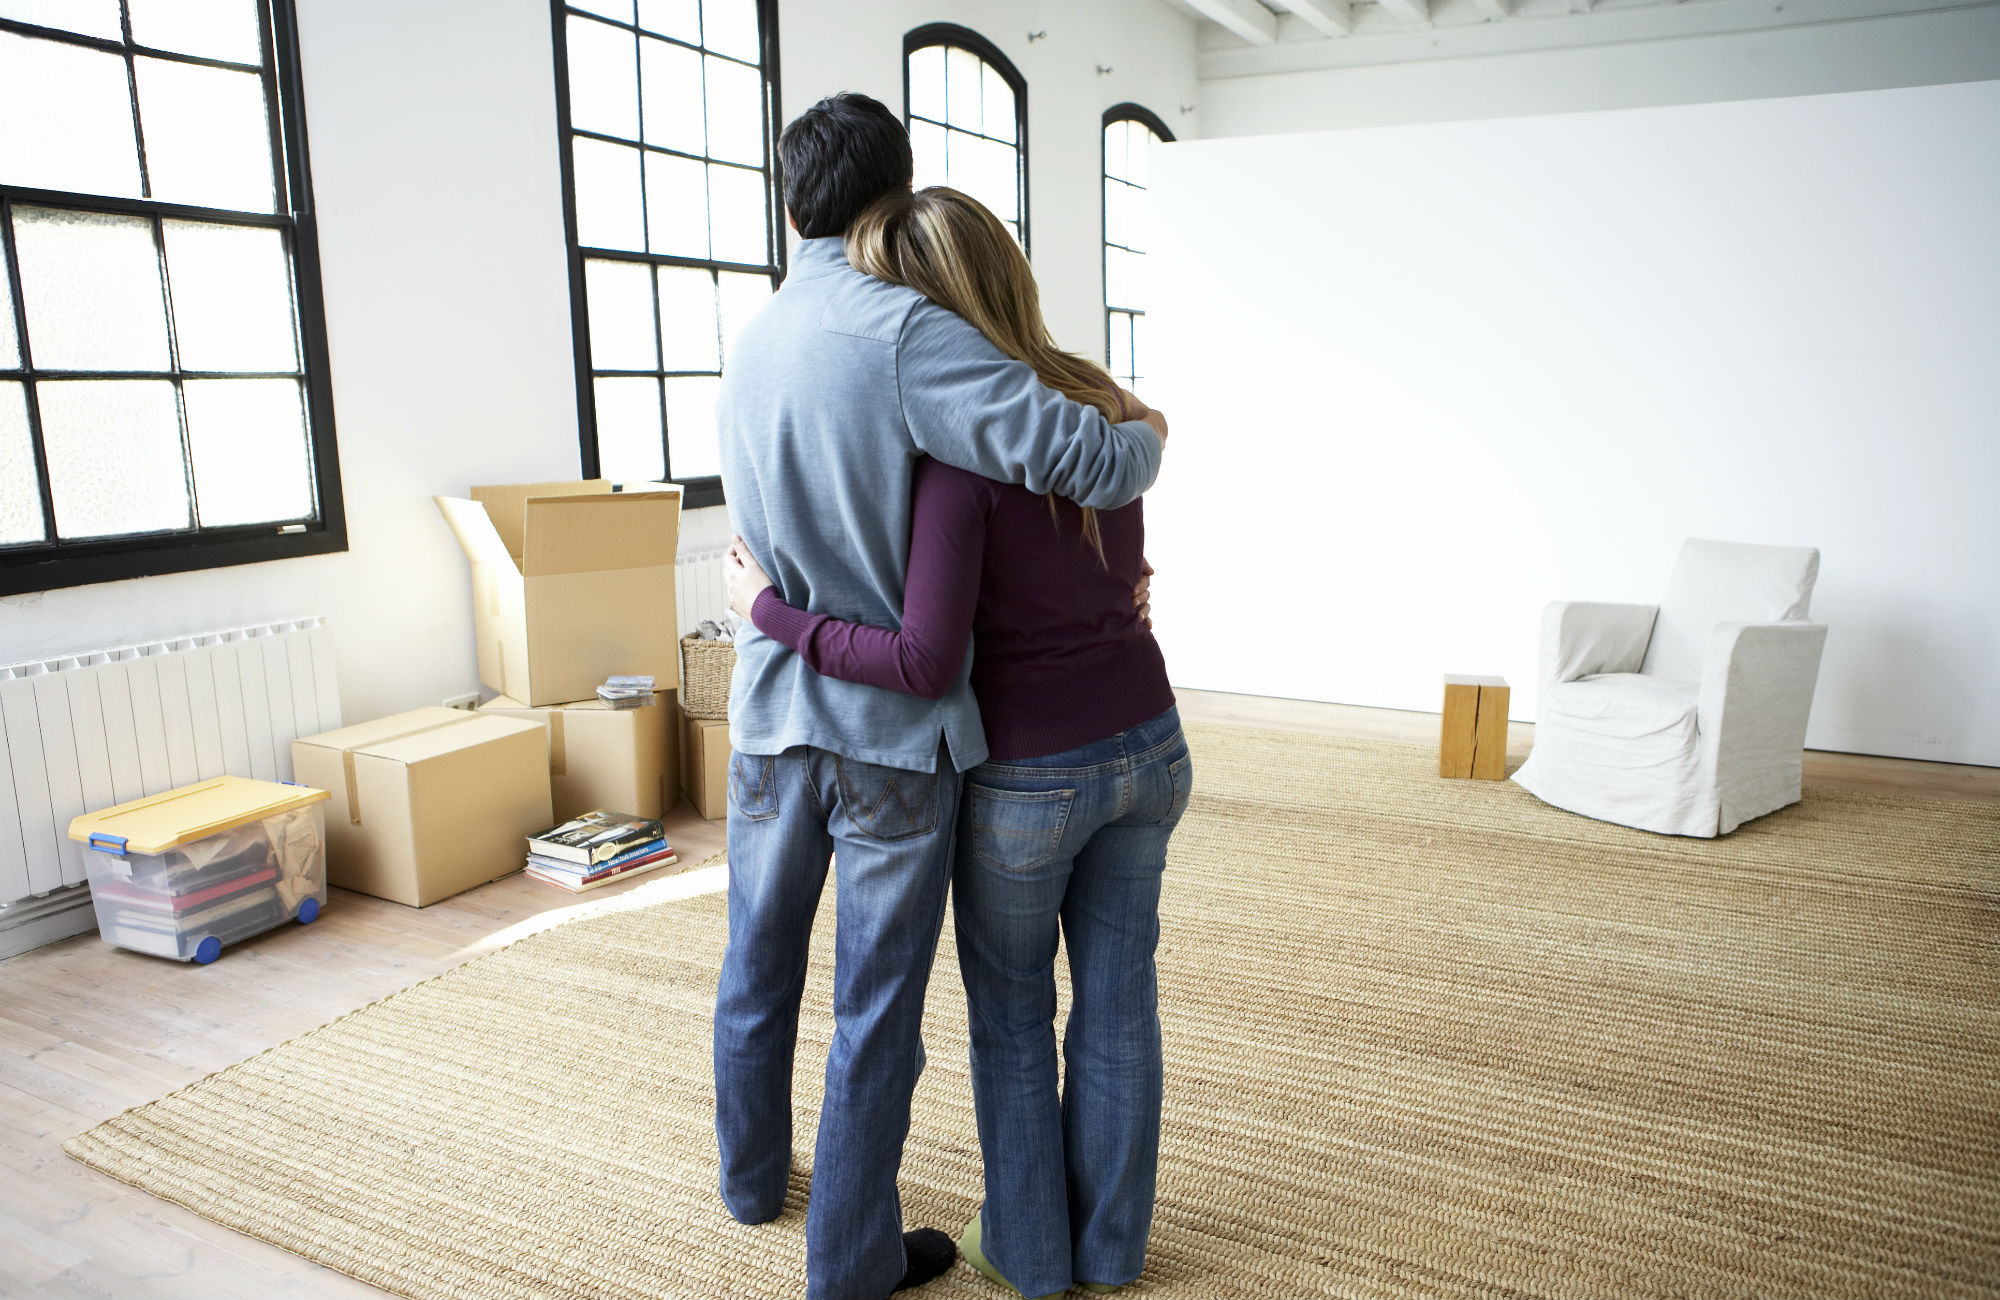 Ready to Look for Your First Home?